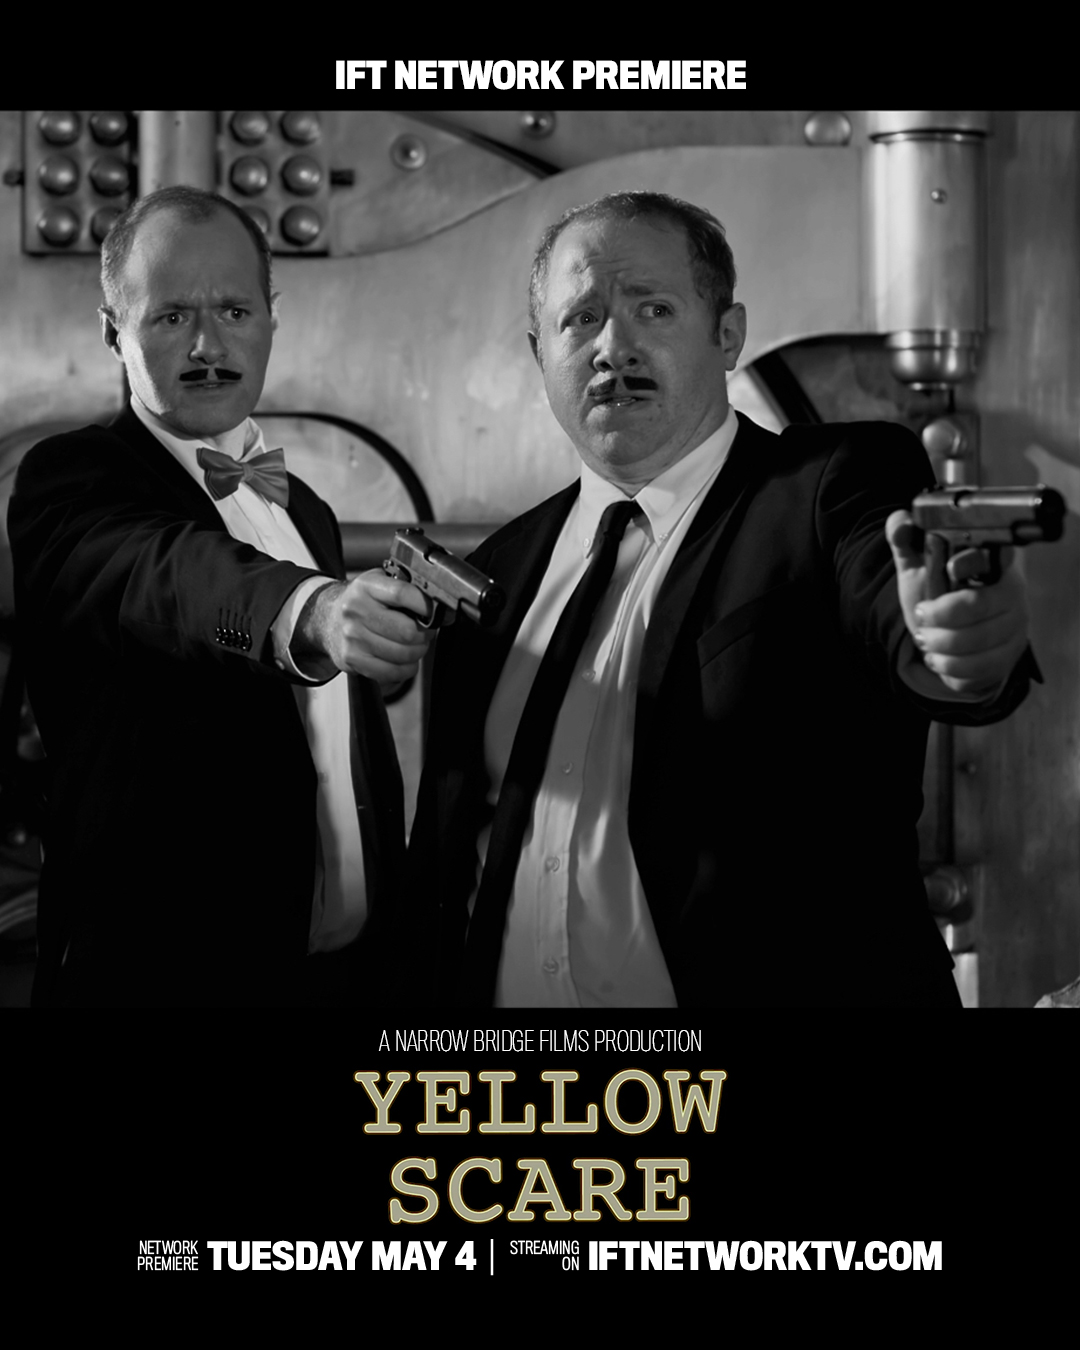 YELLOW_SCARE_Poster01a.JPG